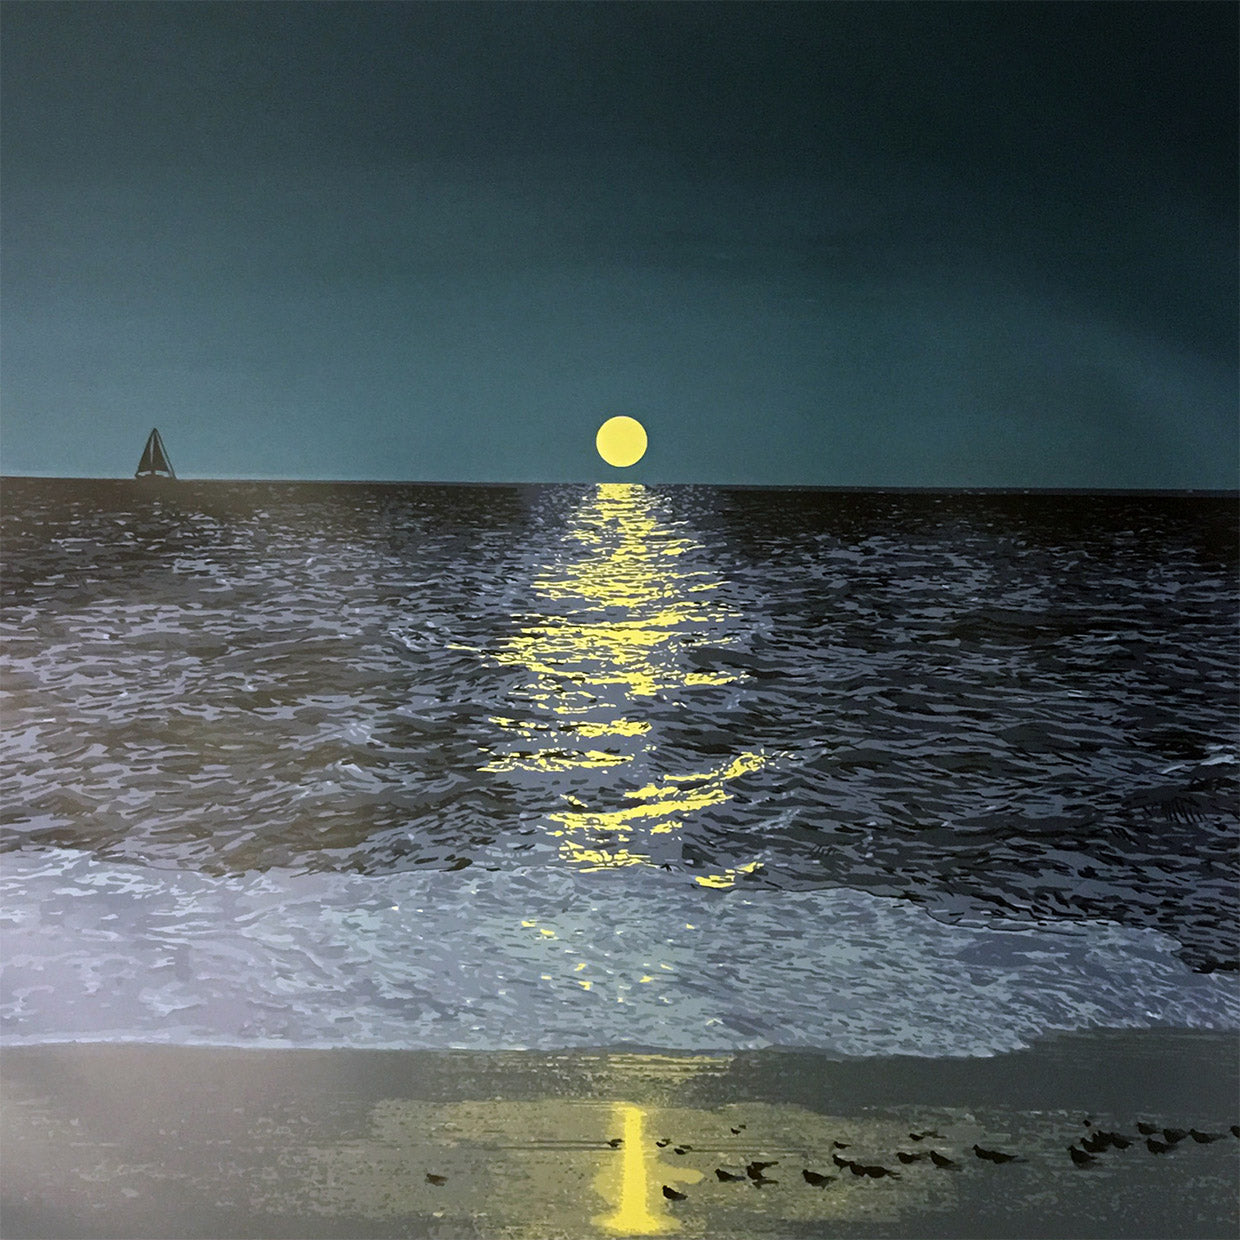 Rapture In The Lonely Shore (Full Moon)